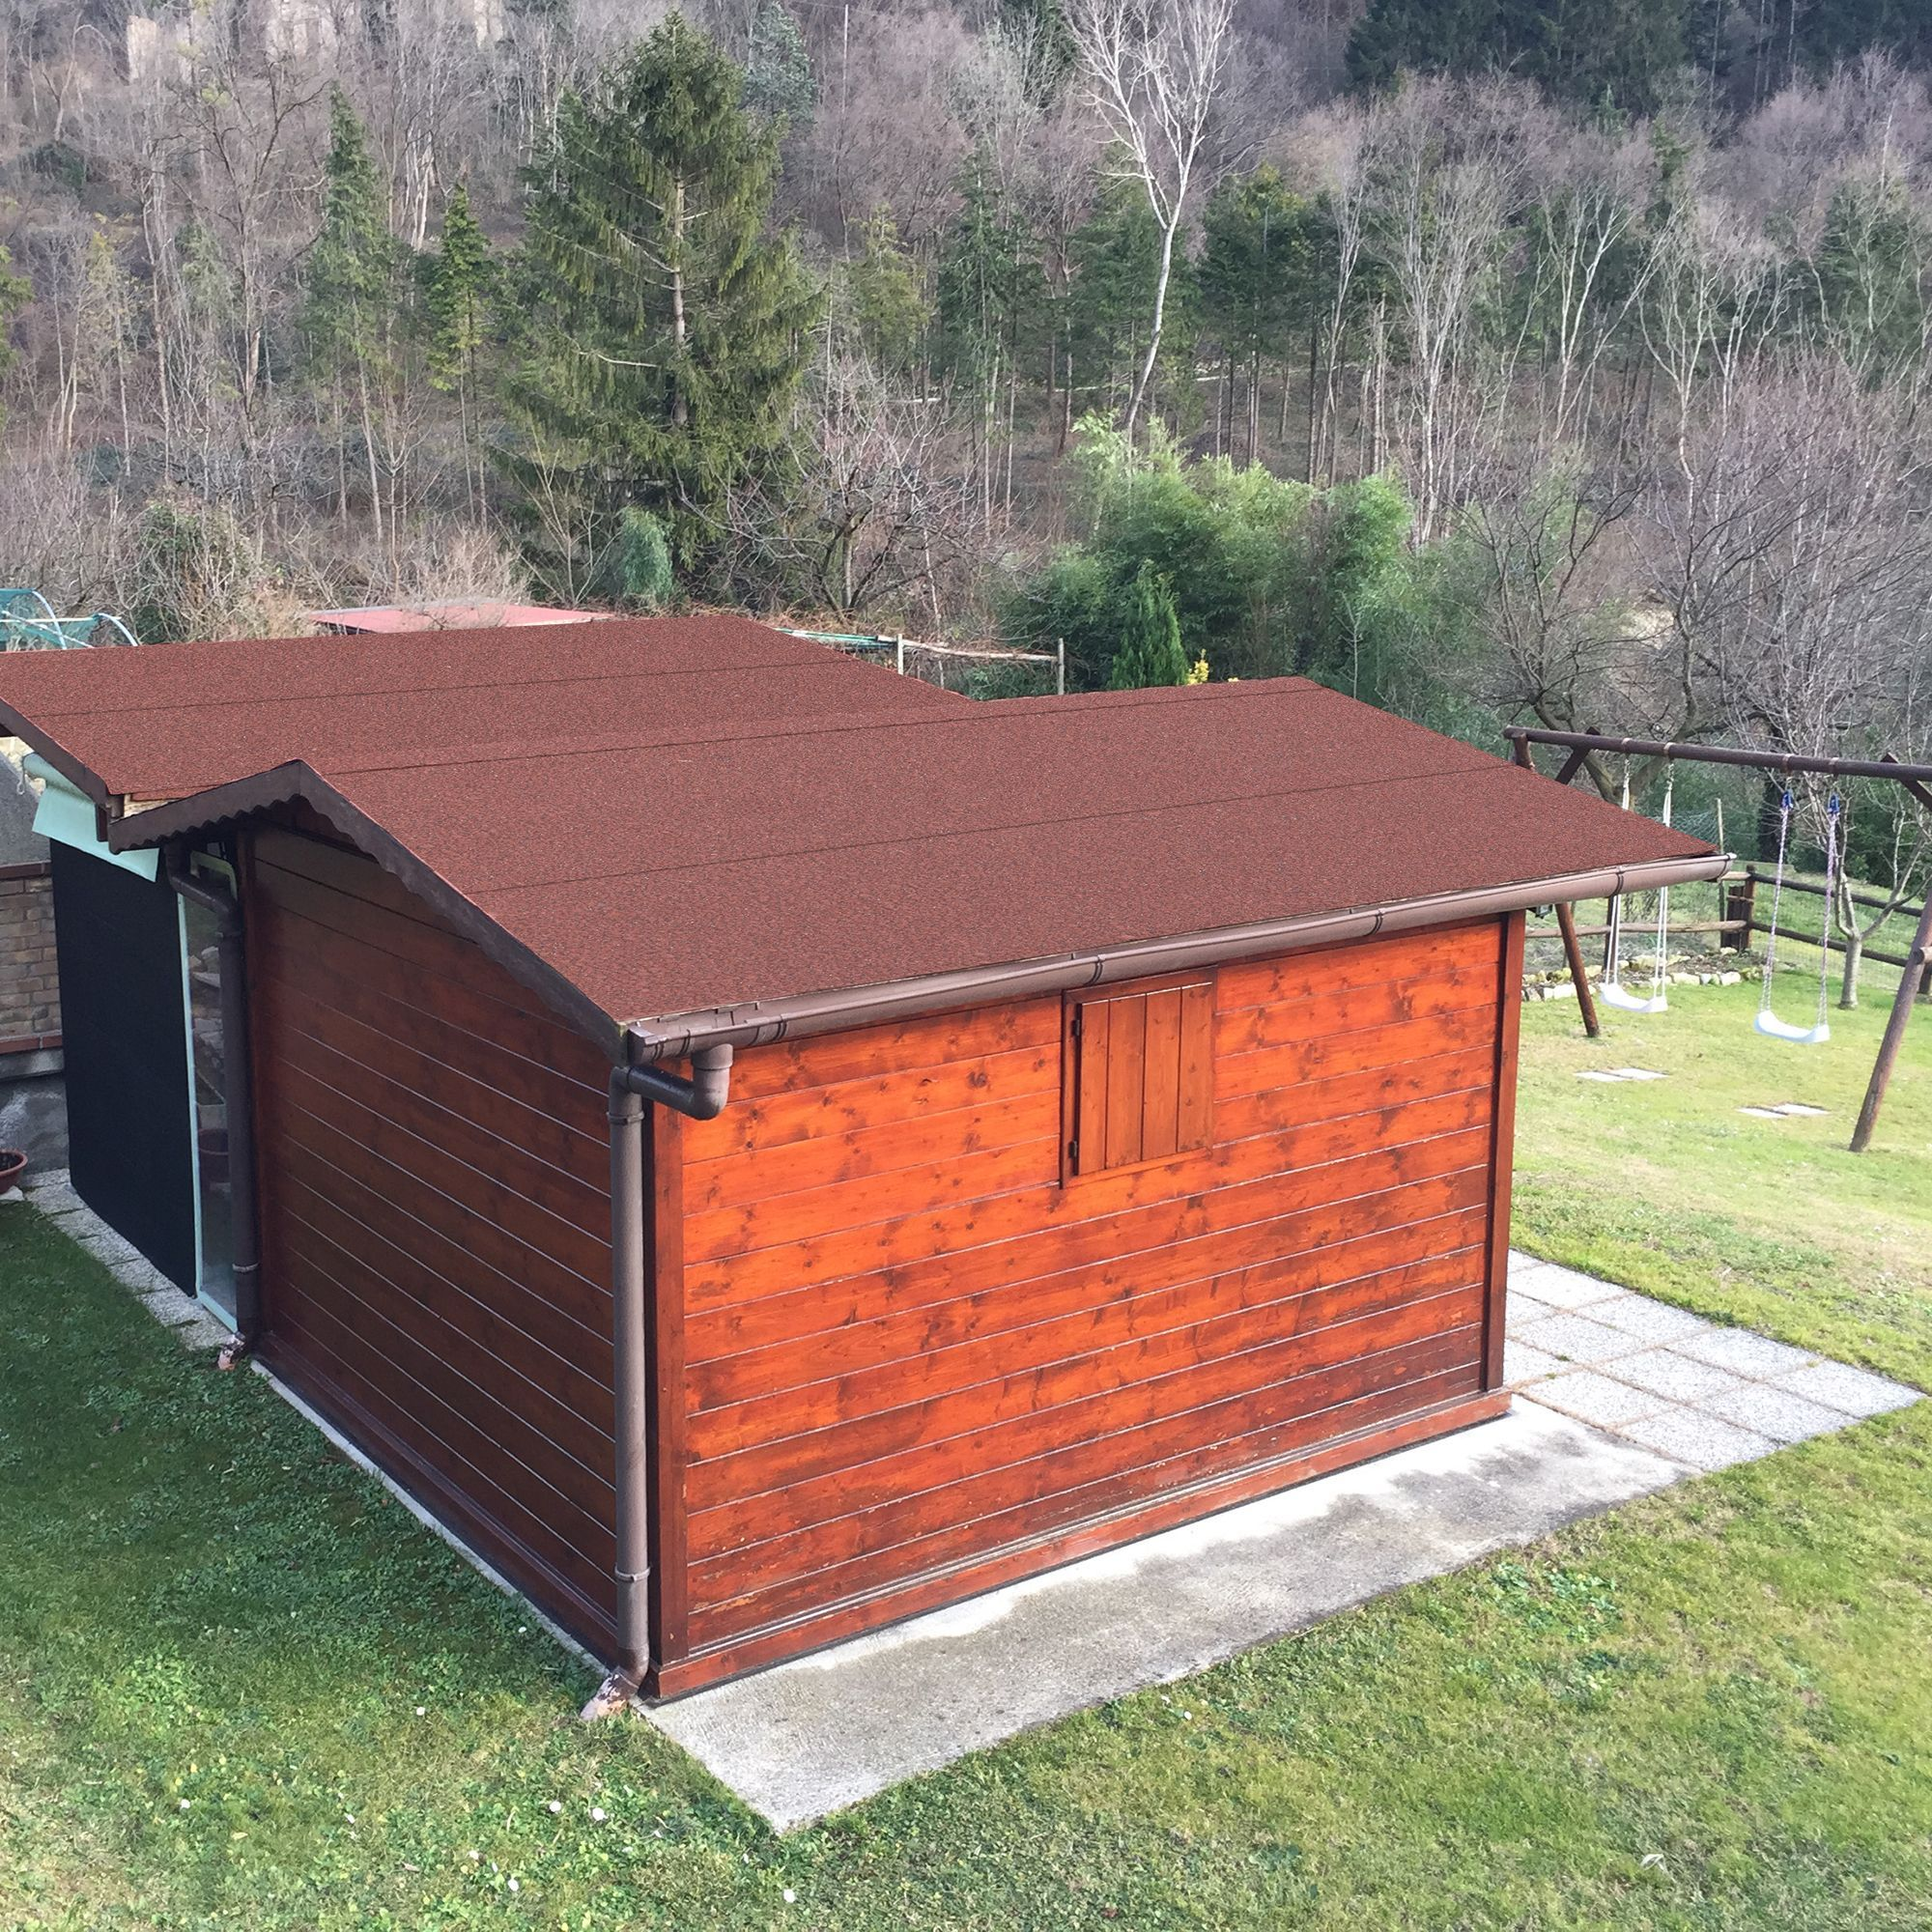 Roof Pro Super Red Shed Felt L 10m W 1m Shed Garden Buildings Outdoor Decor